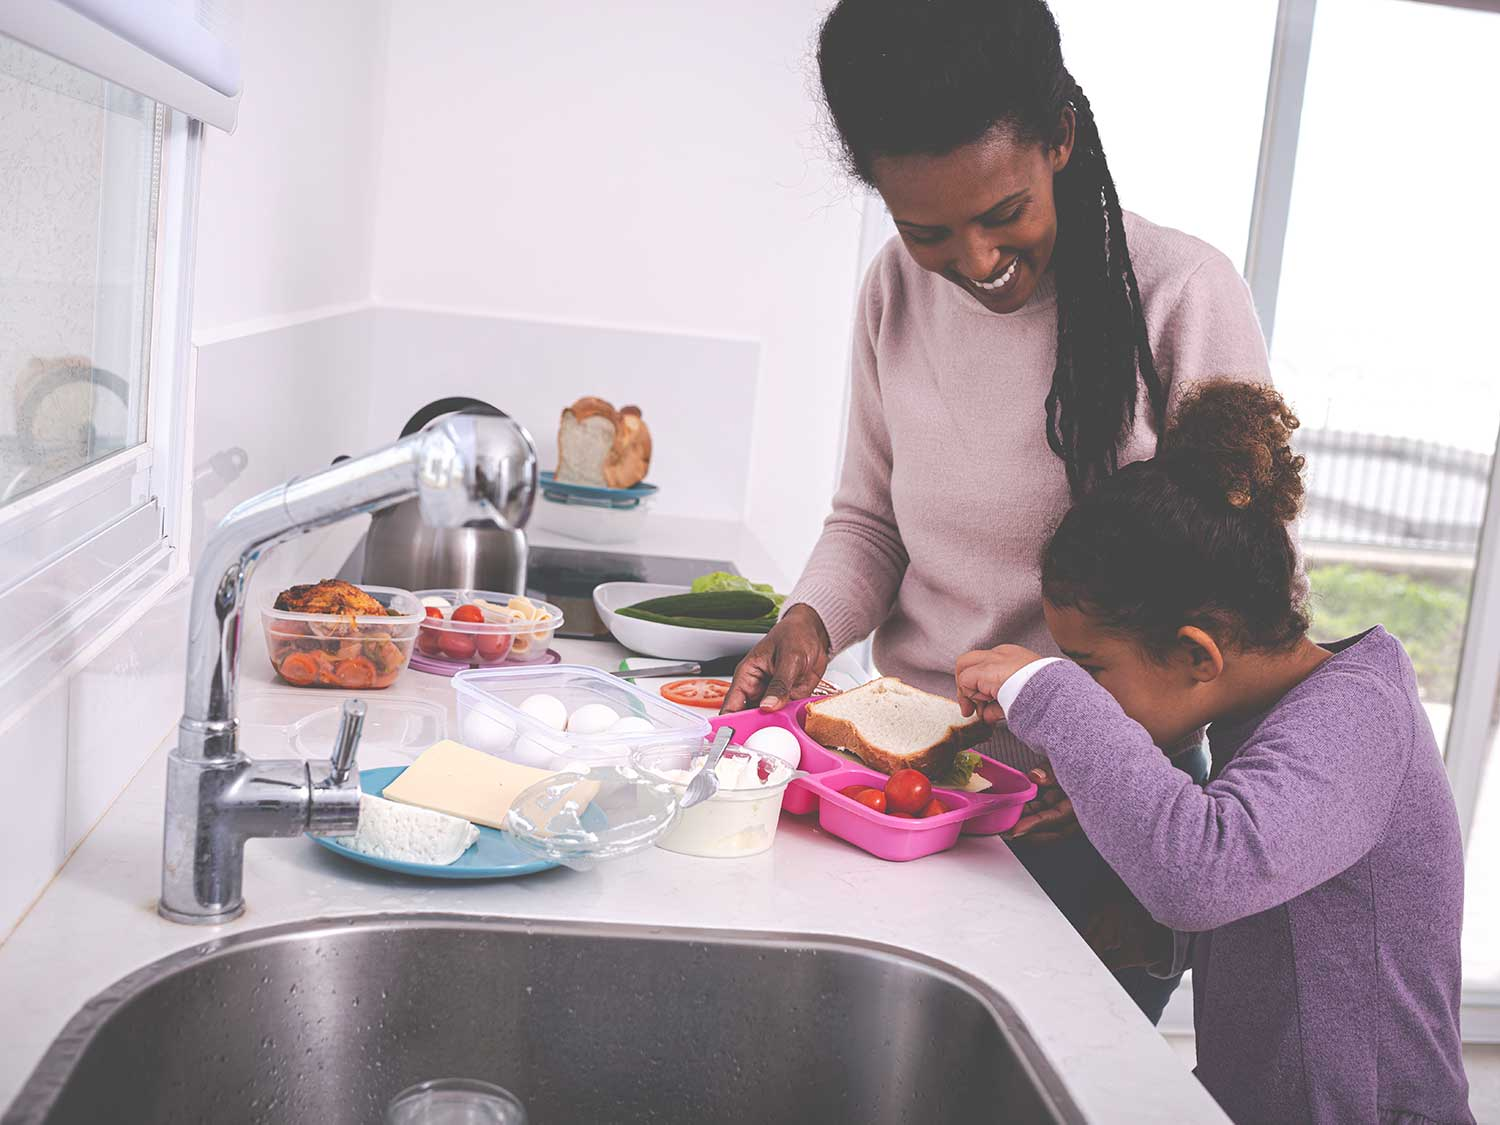 Mother and daughter packing lunch in kid's bento box.